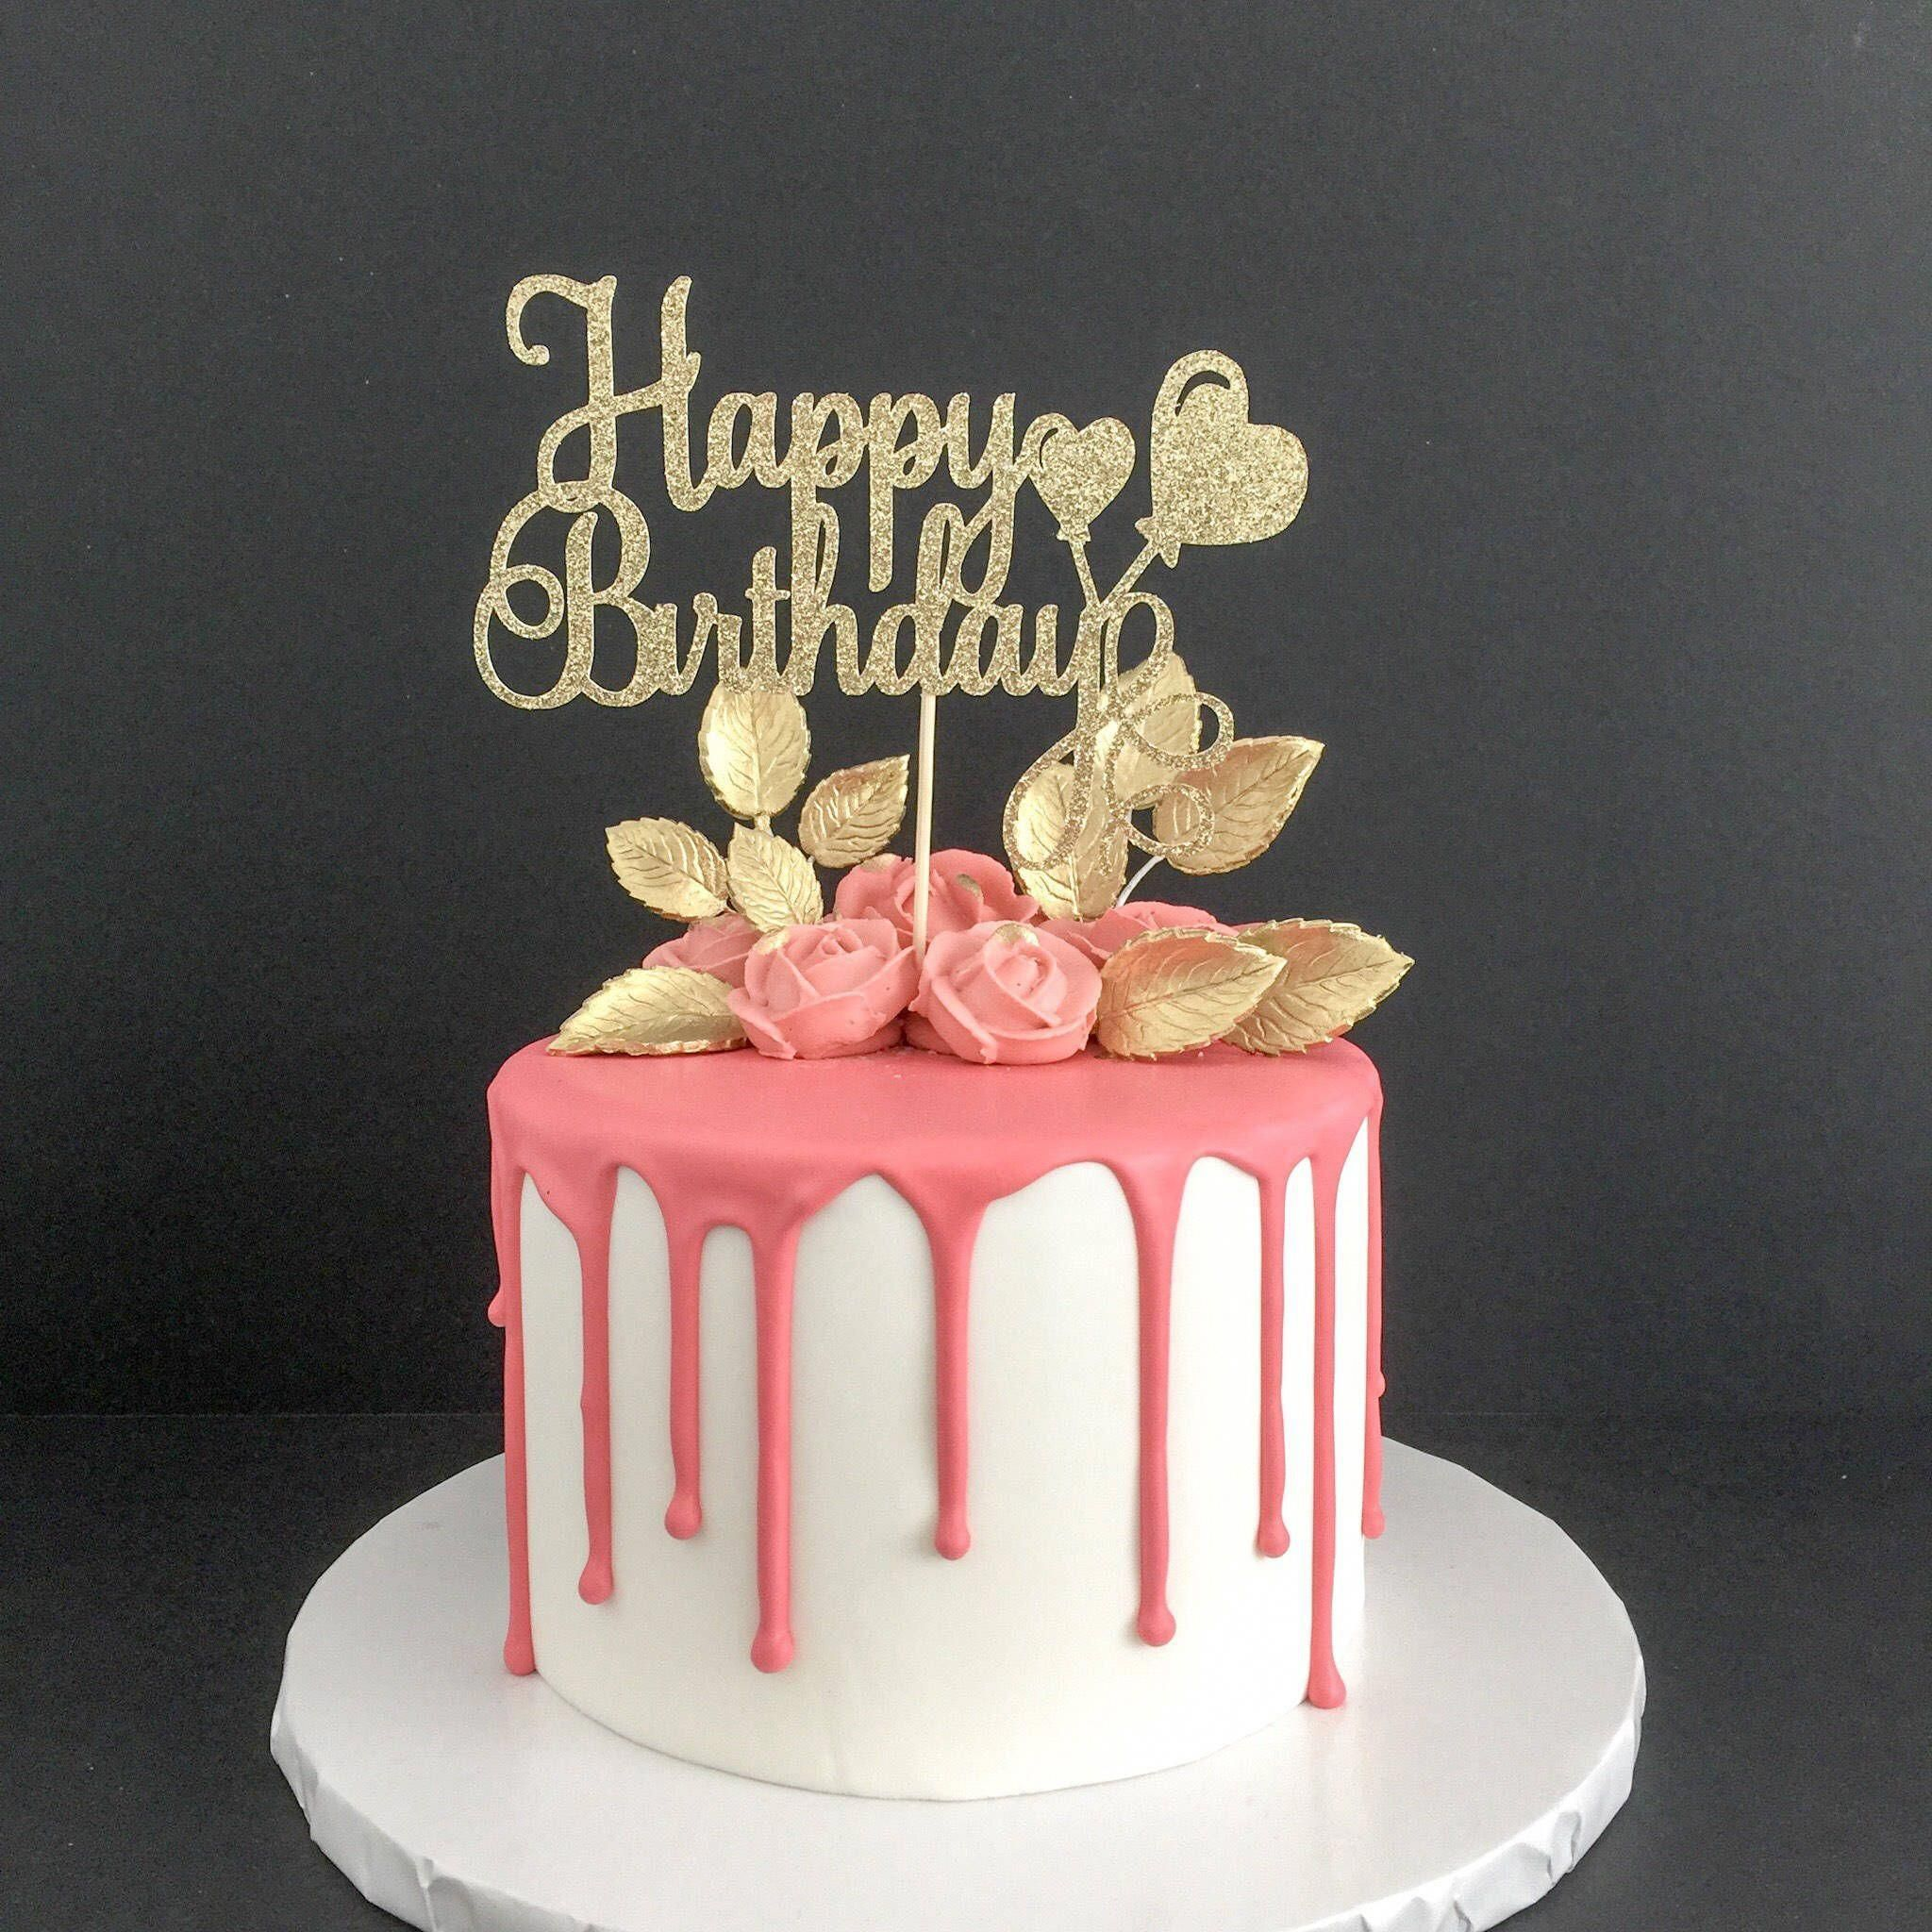 Girls Birthday Cakes Age Girls Birthday Cakes 25th Birthday Cakes 19th Birthday Cakes Pretty Birthday Cakes